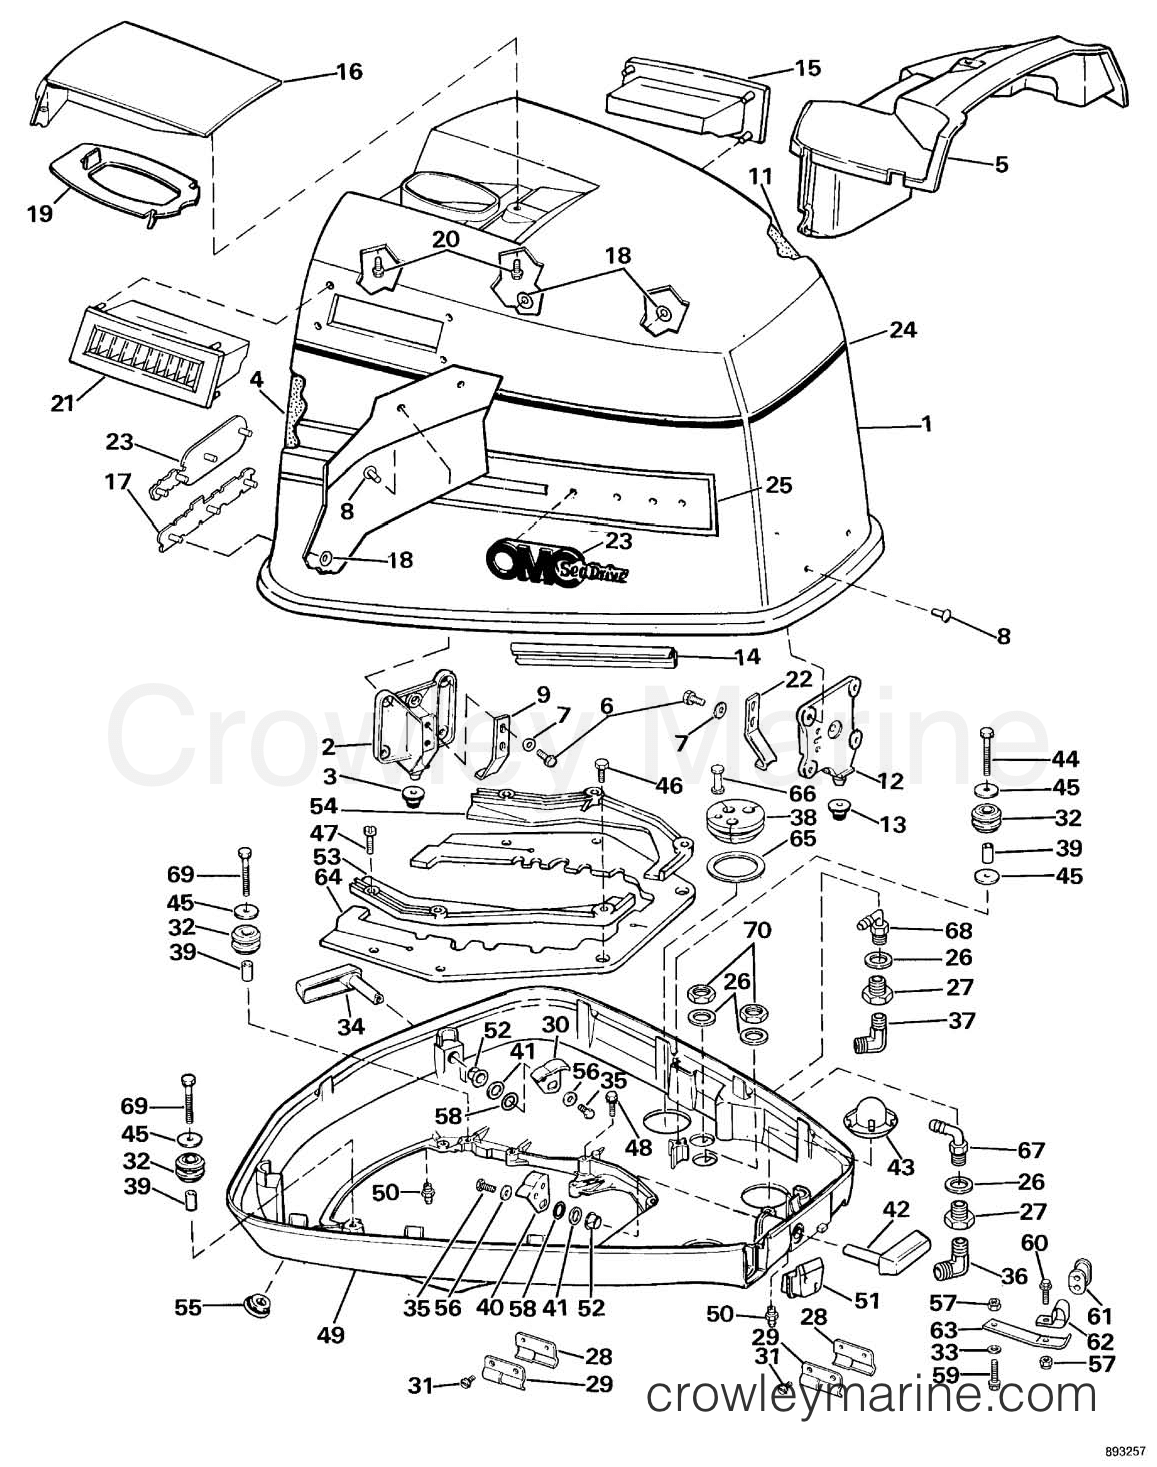 Omc 350 Inboard Wiring Diagram Schematic Diagrams Outboard Sea Drive V4 Engine Library Of U2022 Steering